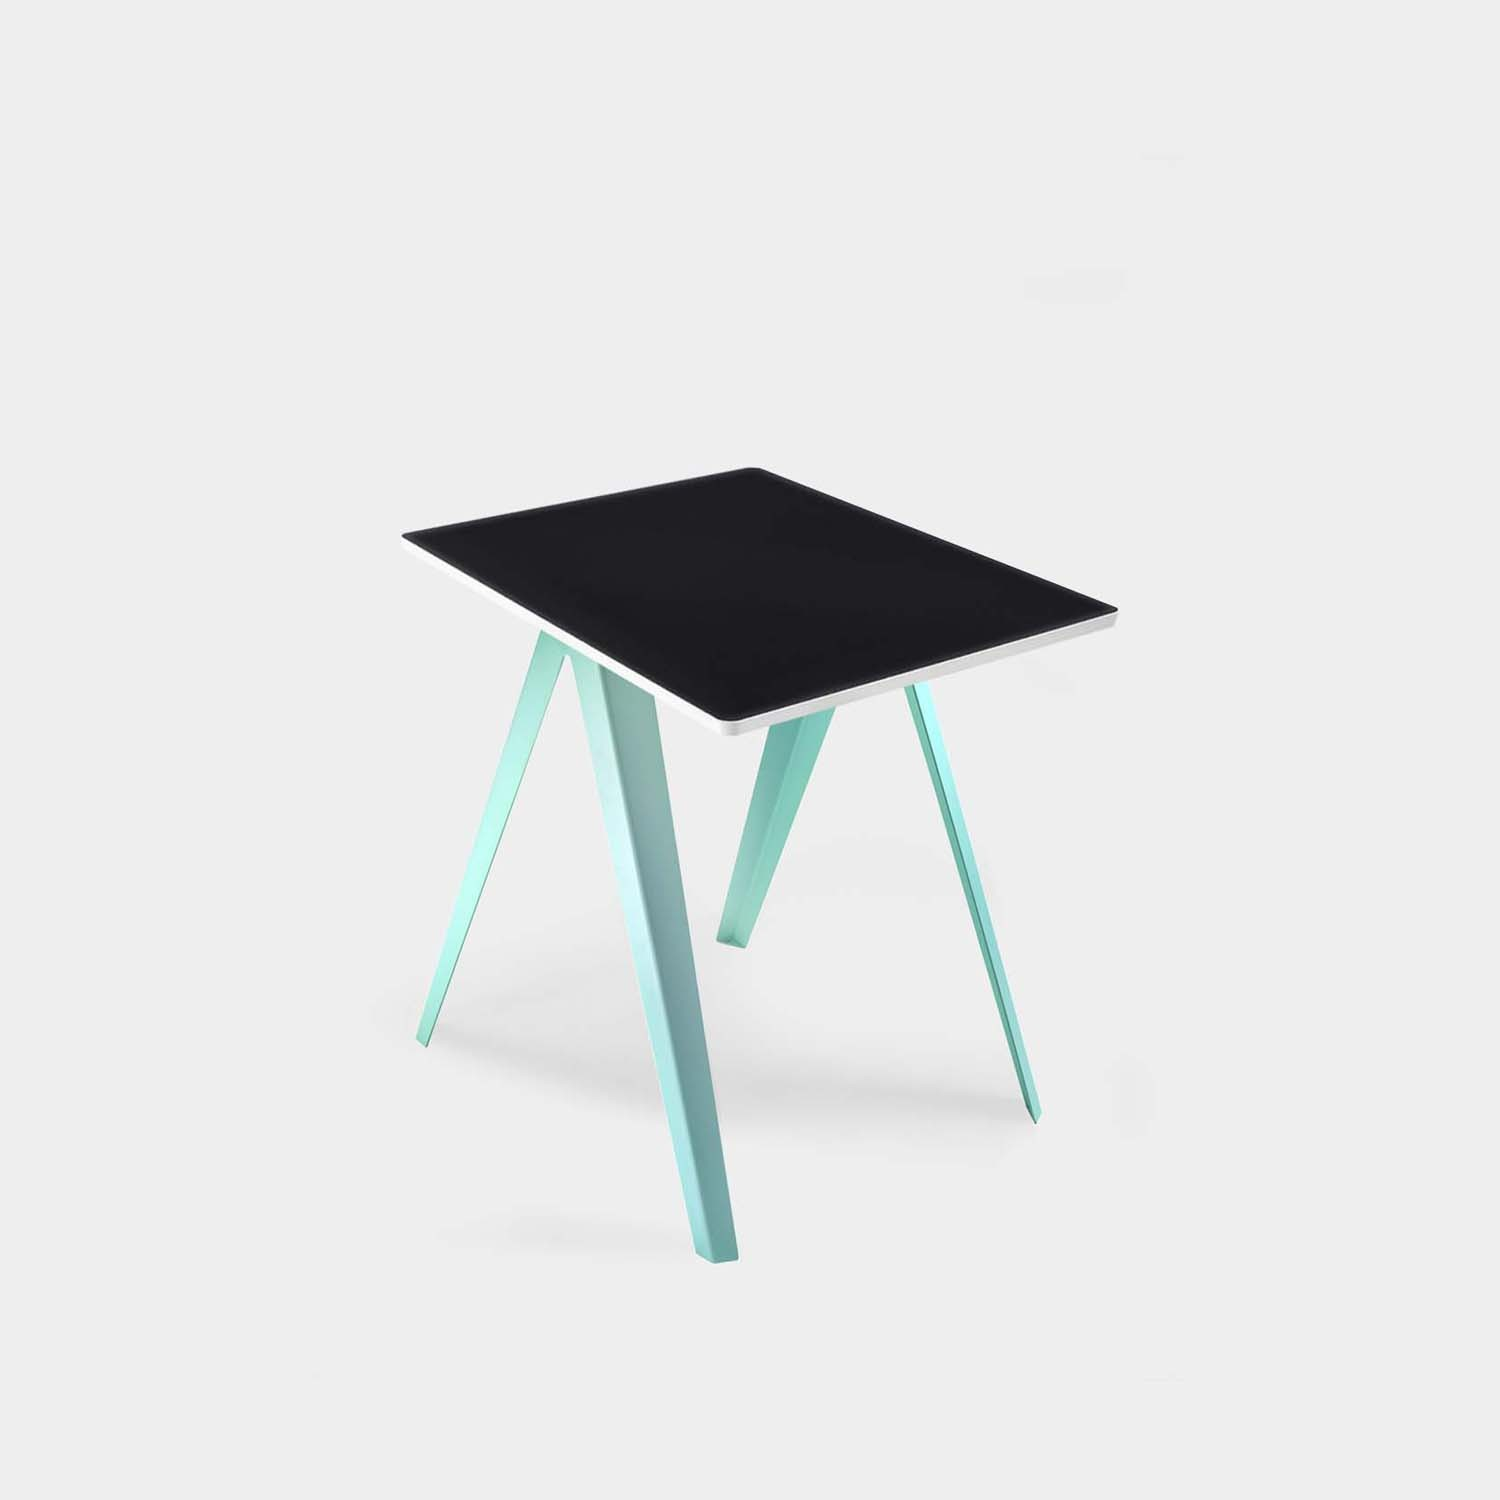 Sanba Table, Black/White Top, Green Structure